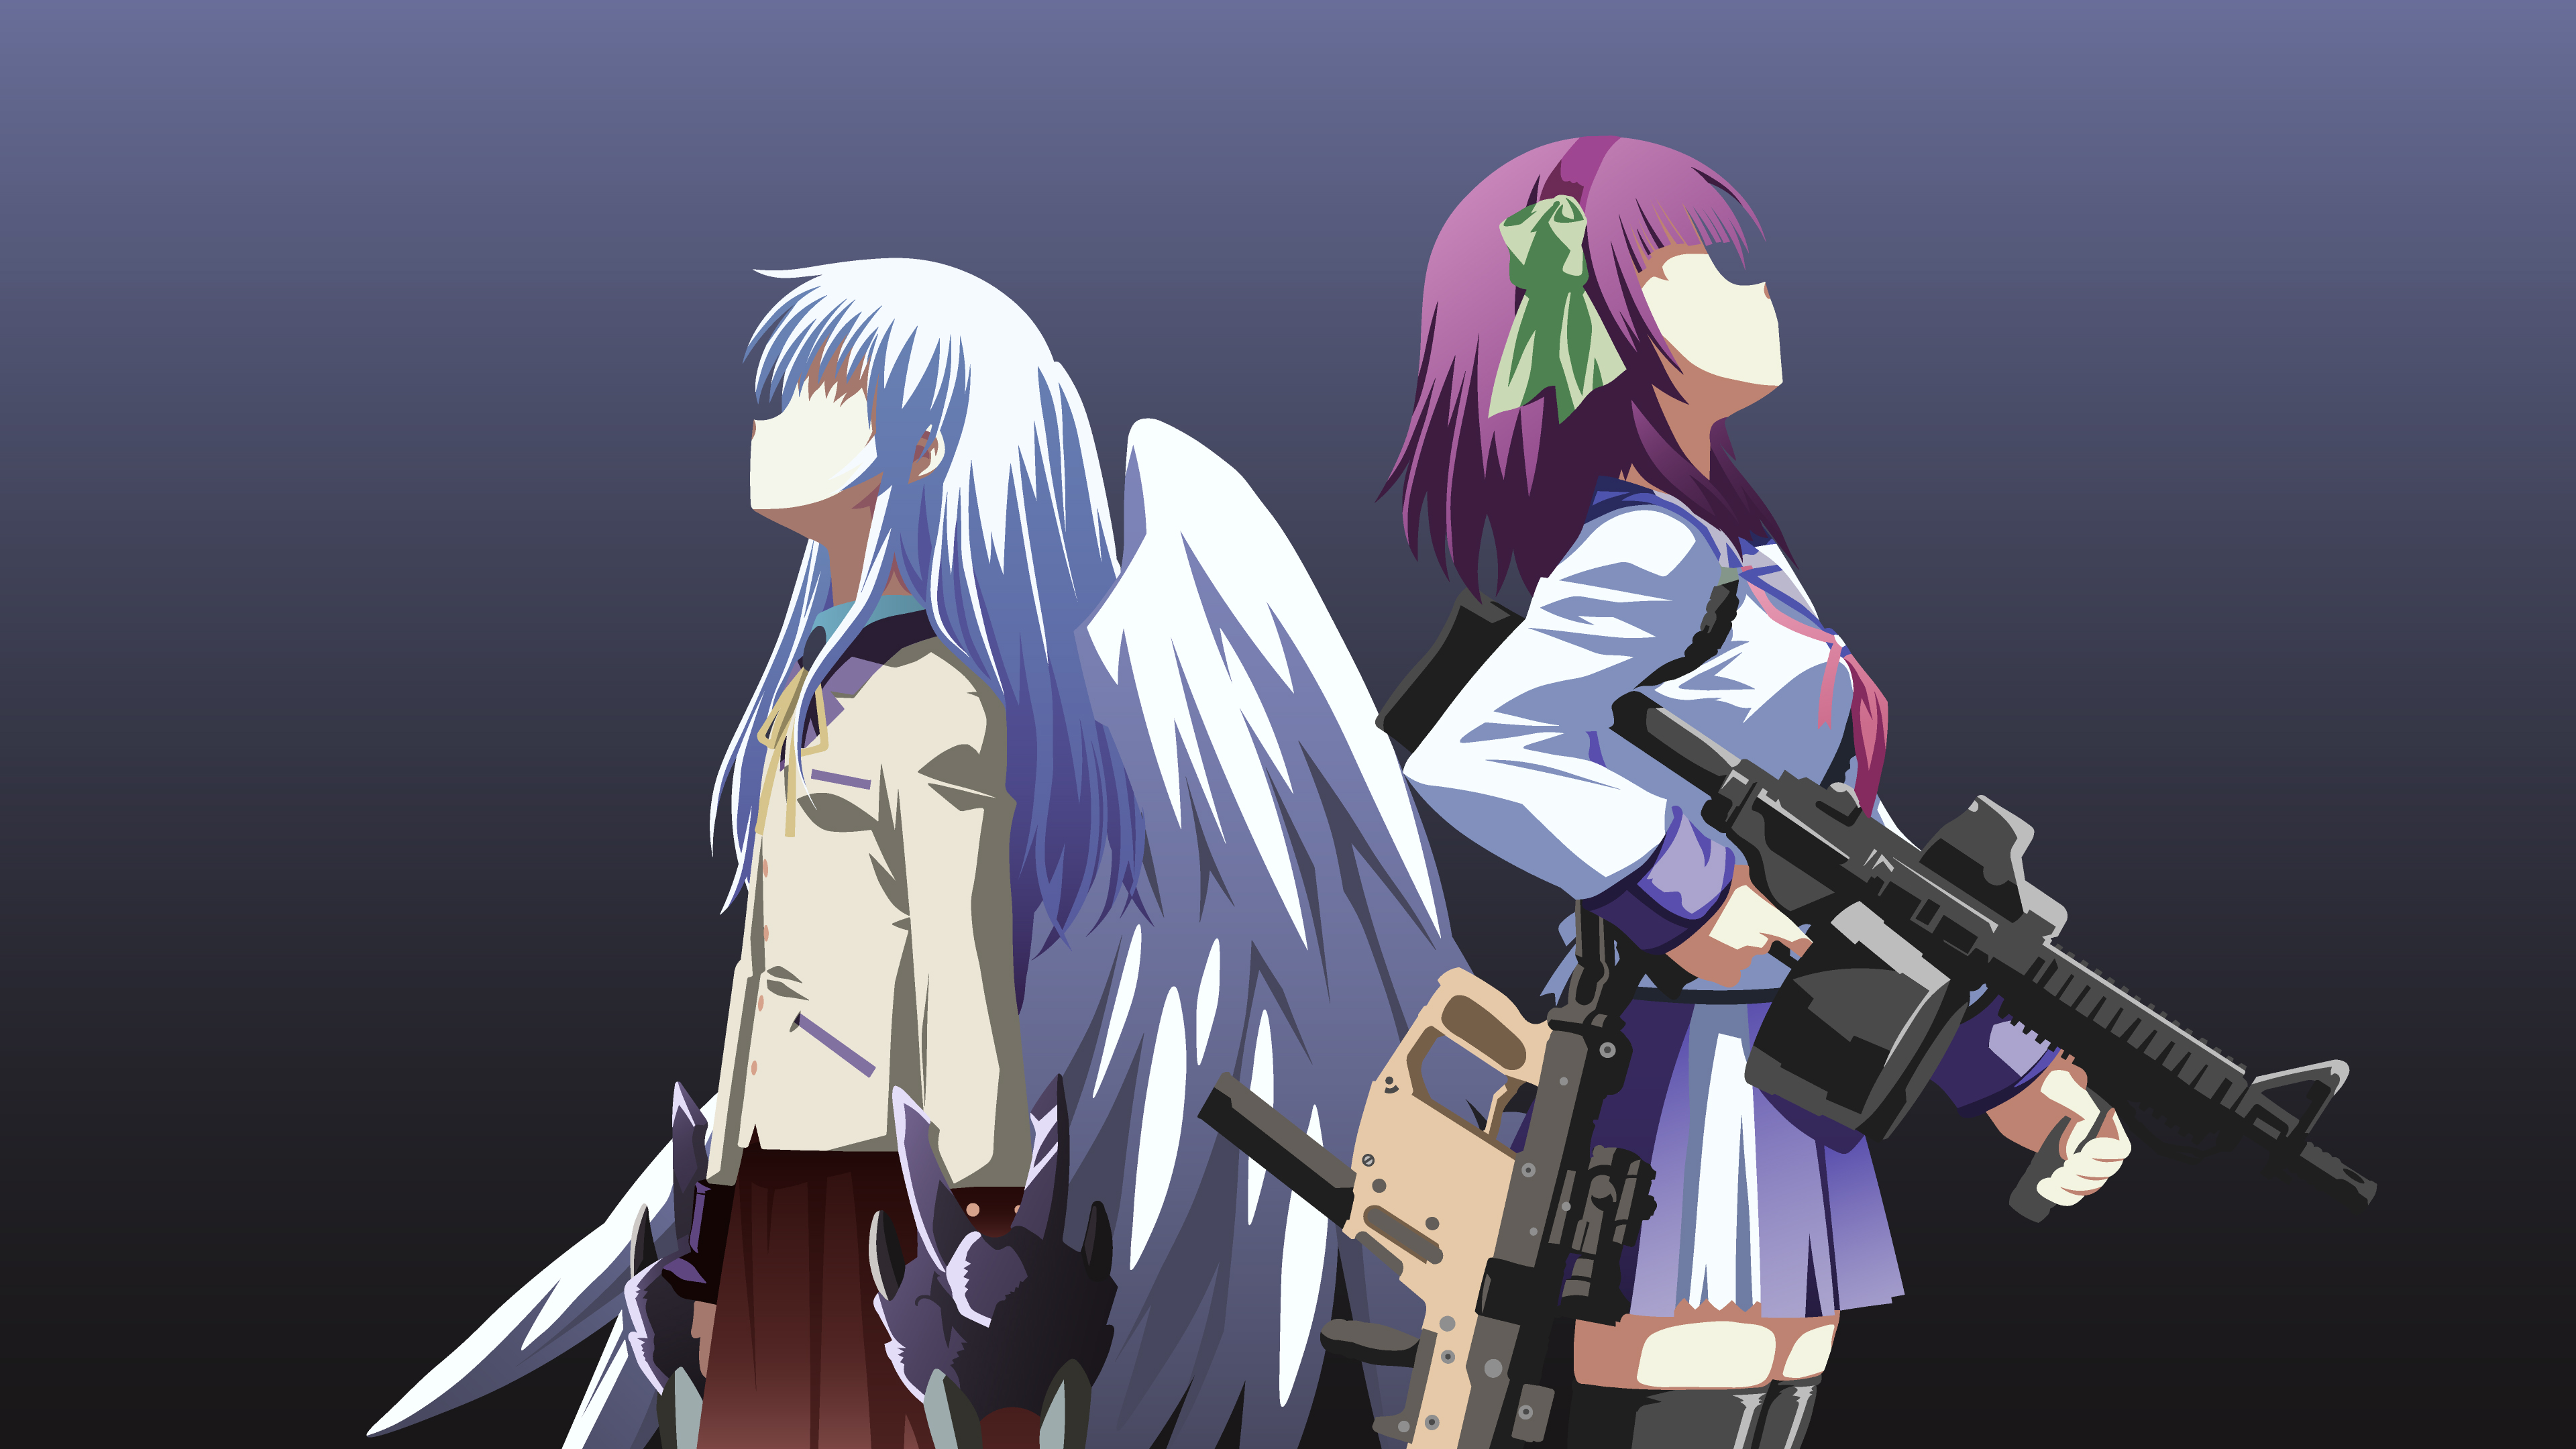 yurippe and kanade angel beats mini st by metalsynkk on yurippe and kanade angel beats mini st by metalsynkk